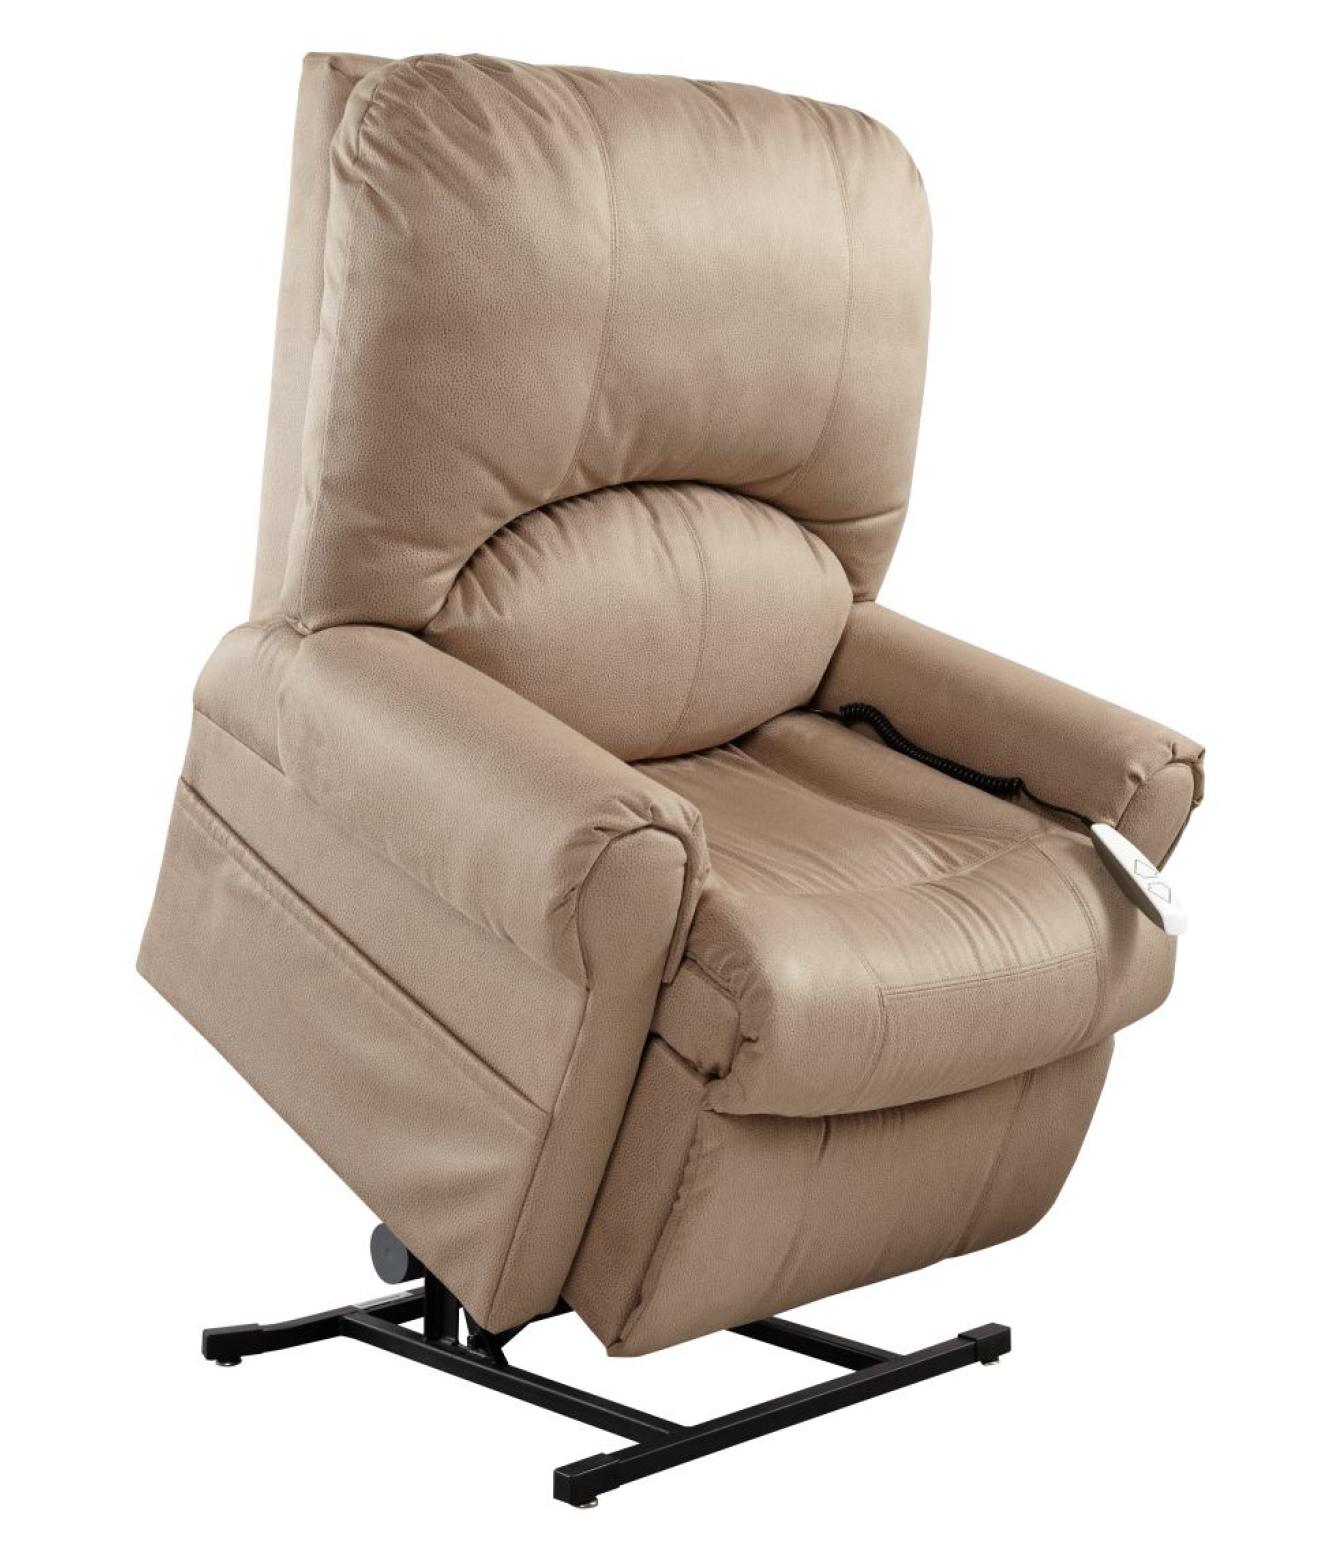 AS6001 Torch Electric Power Recliner Lift Chair by Mega